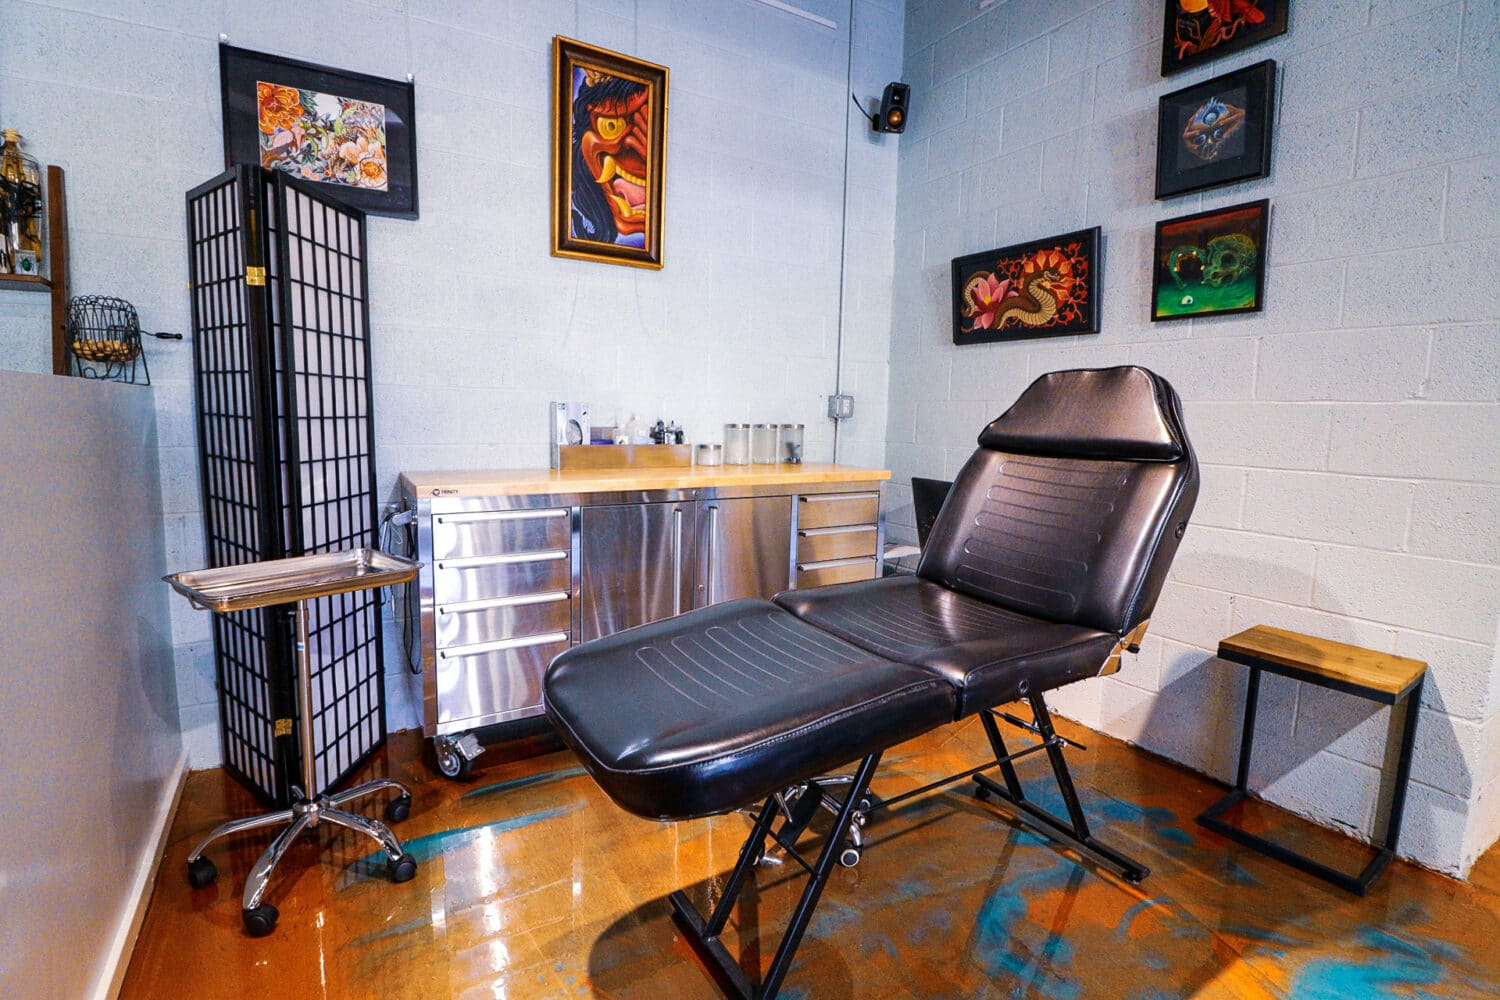 Tattoo booth at Sentient Tattoo Collective in Tempe, AZ